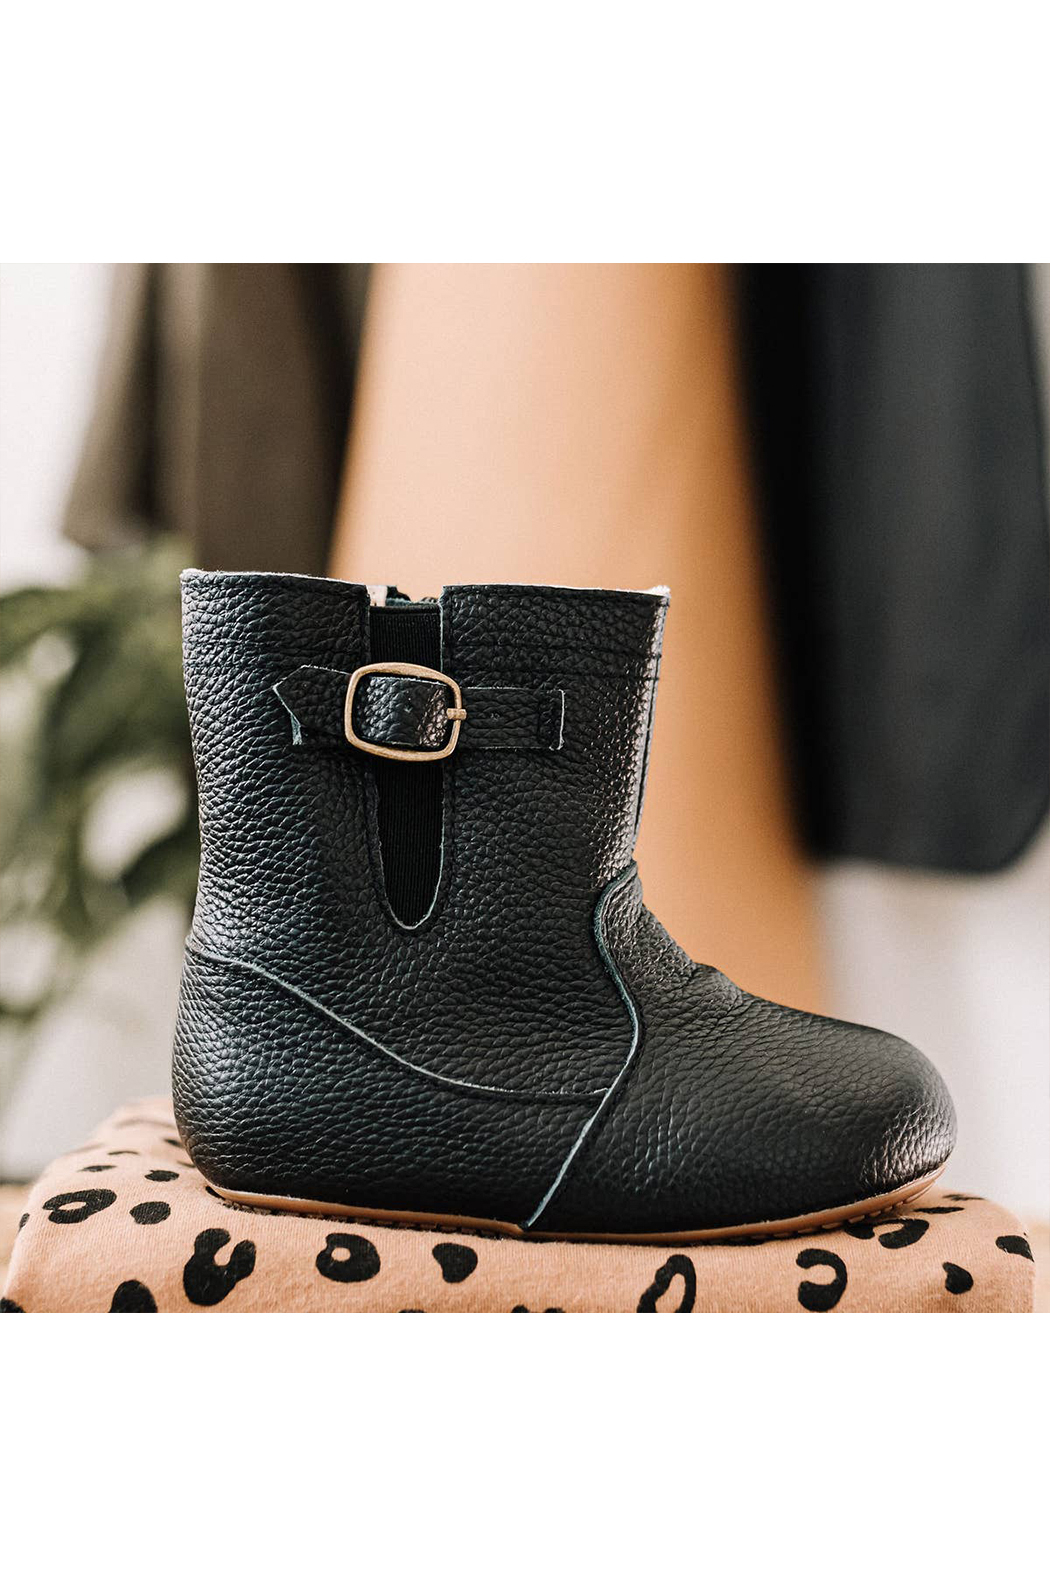 Little Love Bug Black Riding Moccasin Boot with Waterproof Soft Sole - Front Full Image